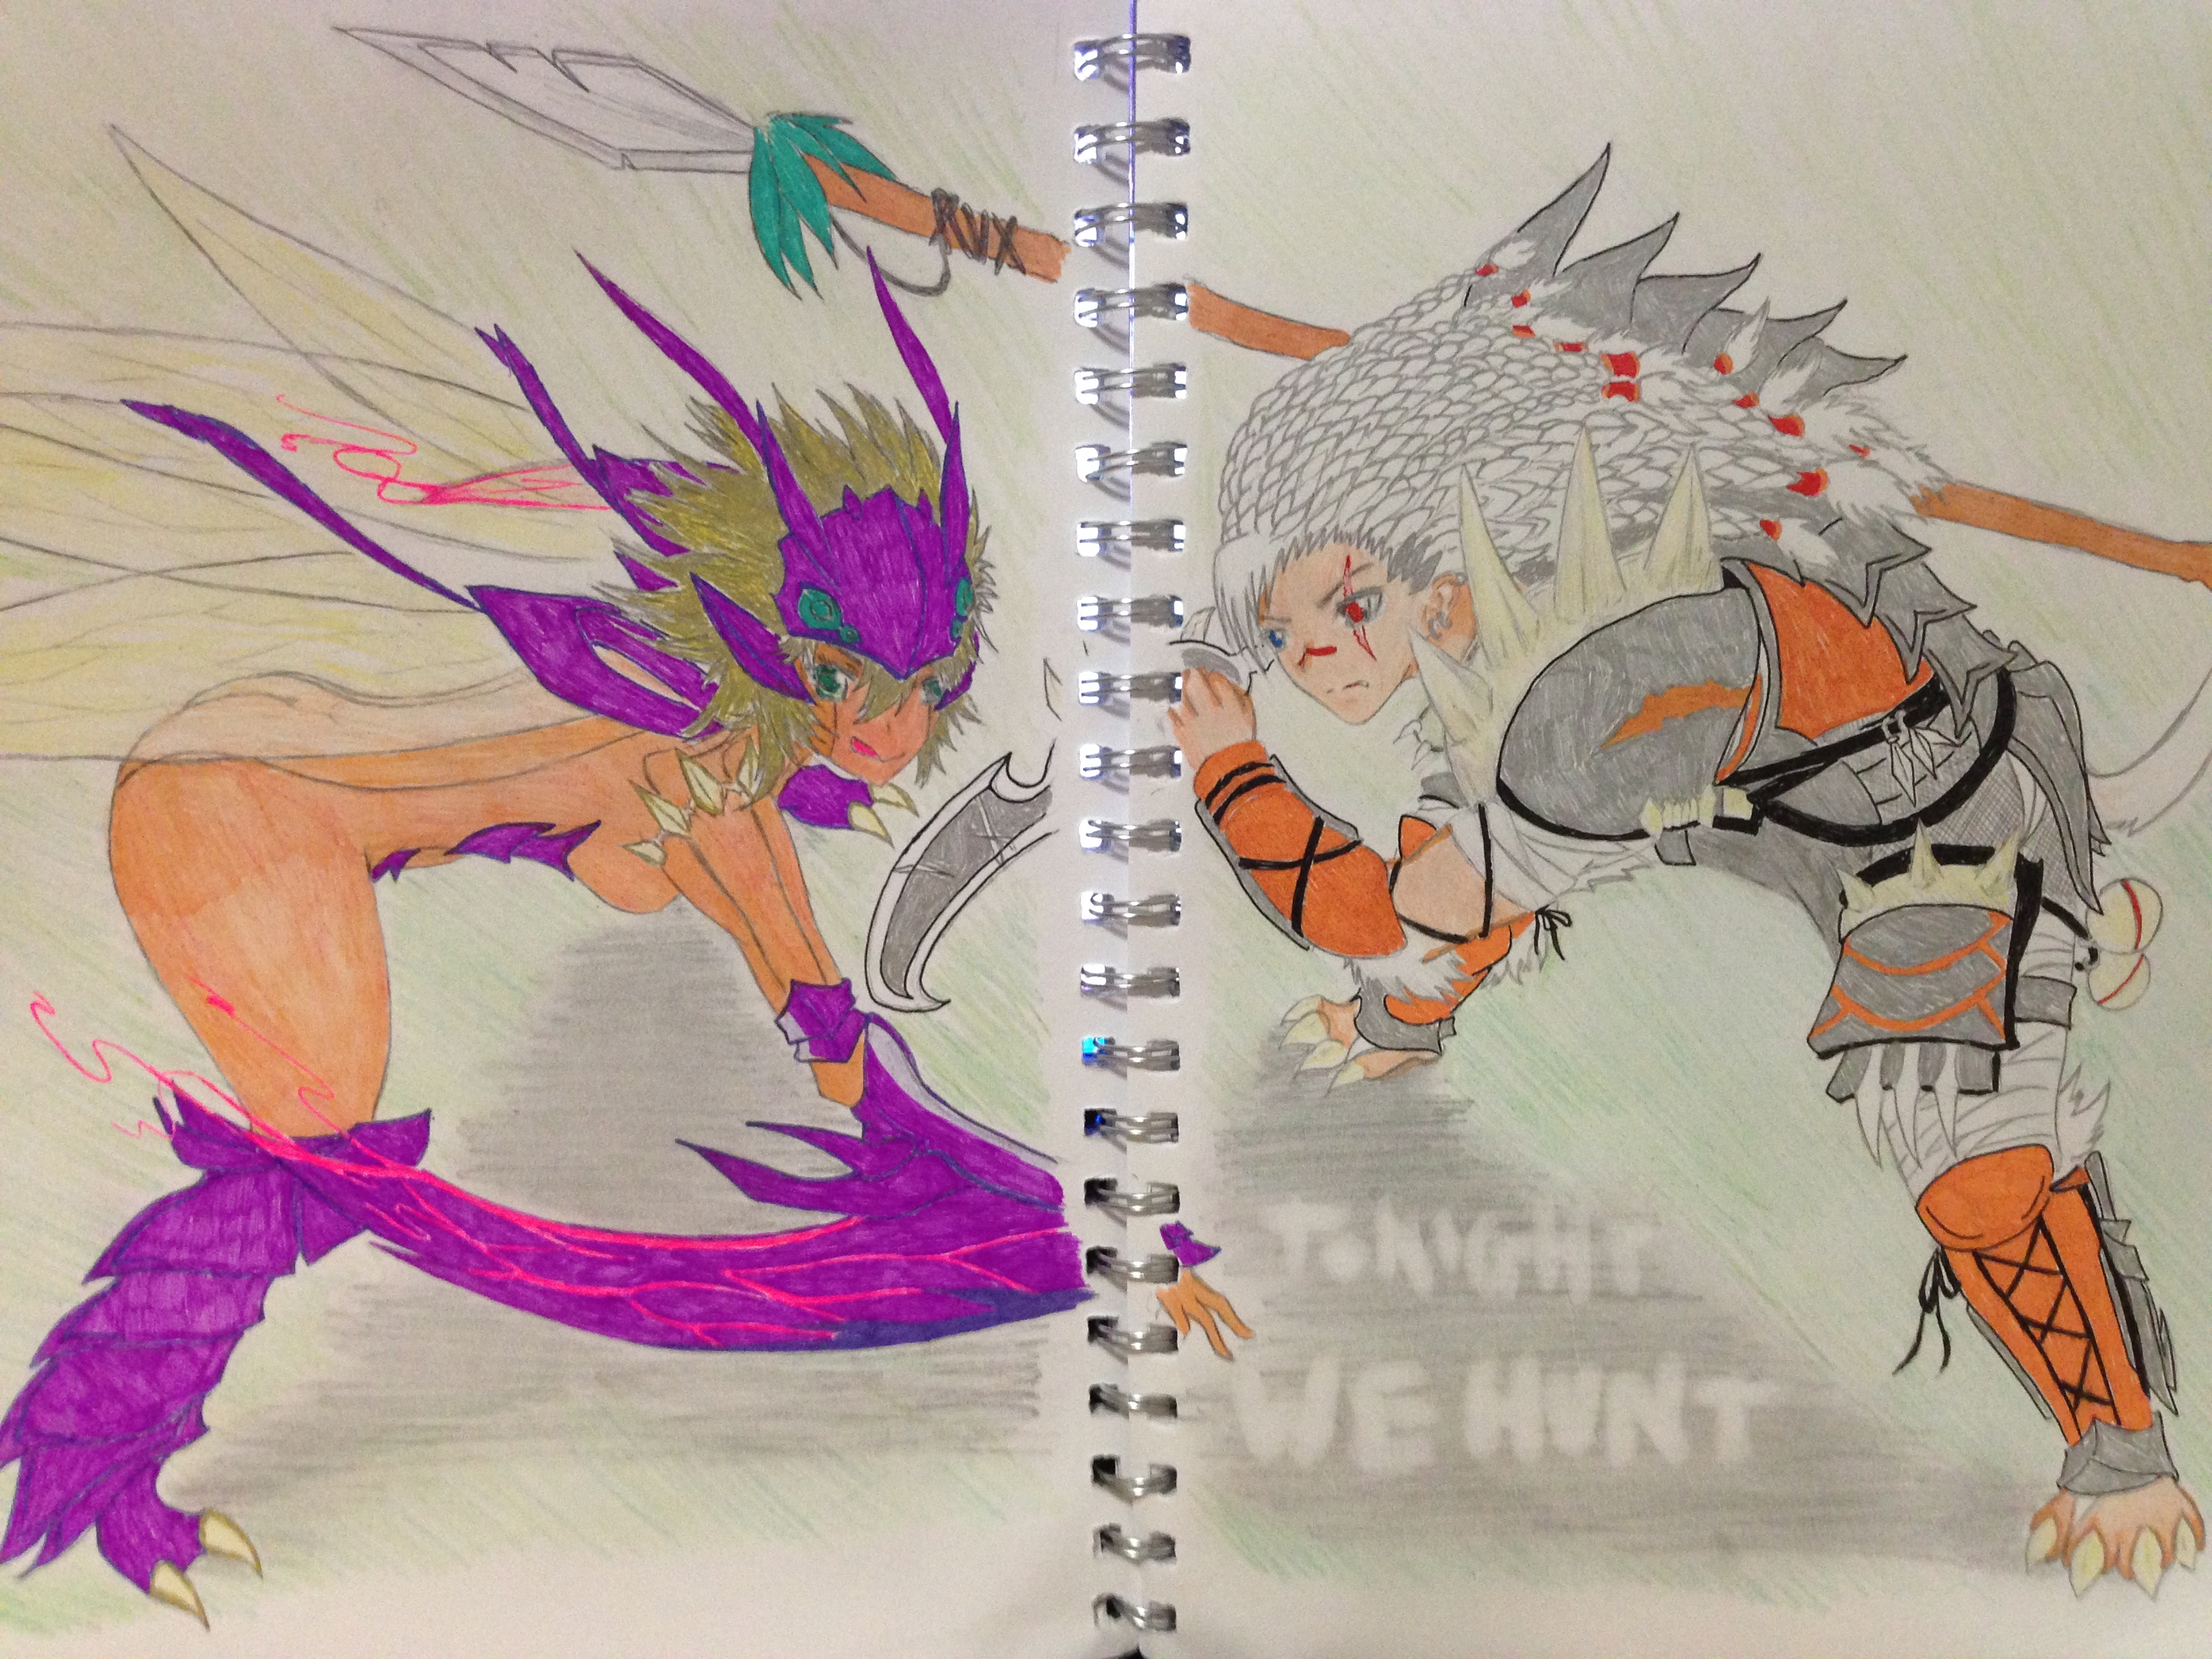 Kha'Zix vs Rengar by VincasCalvii on DeviantArt